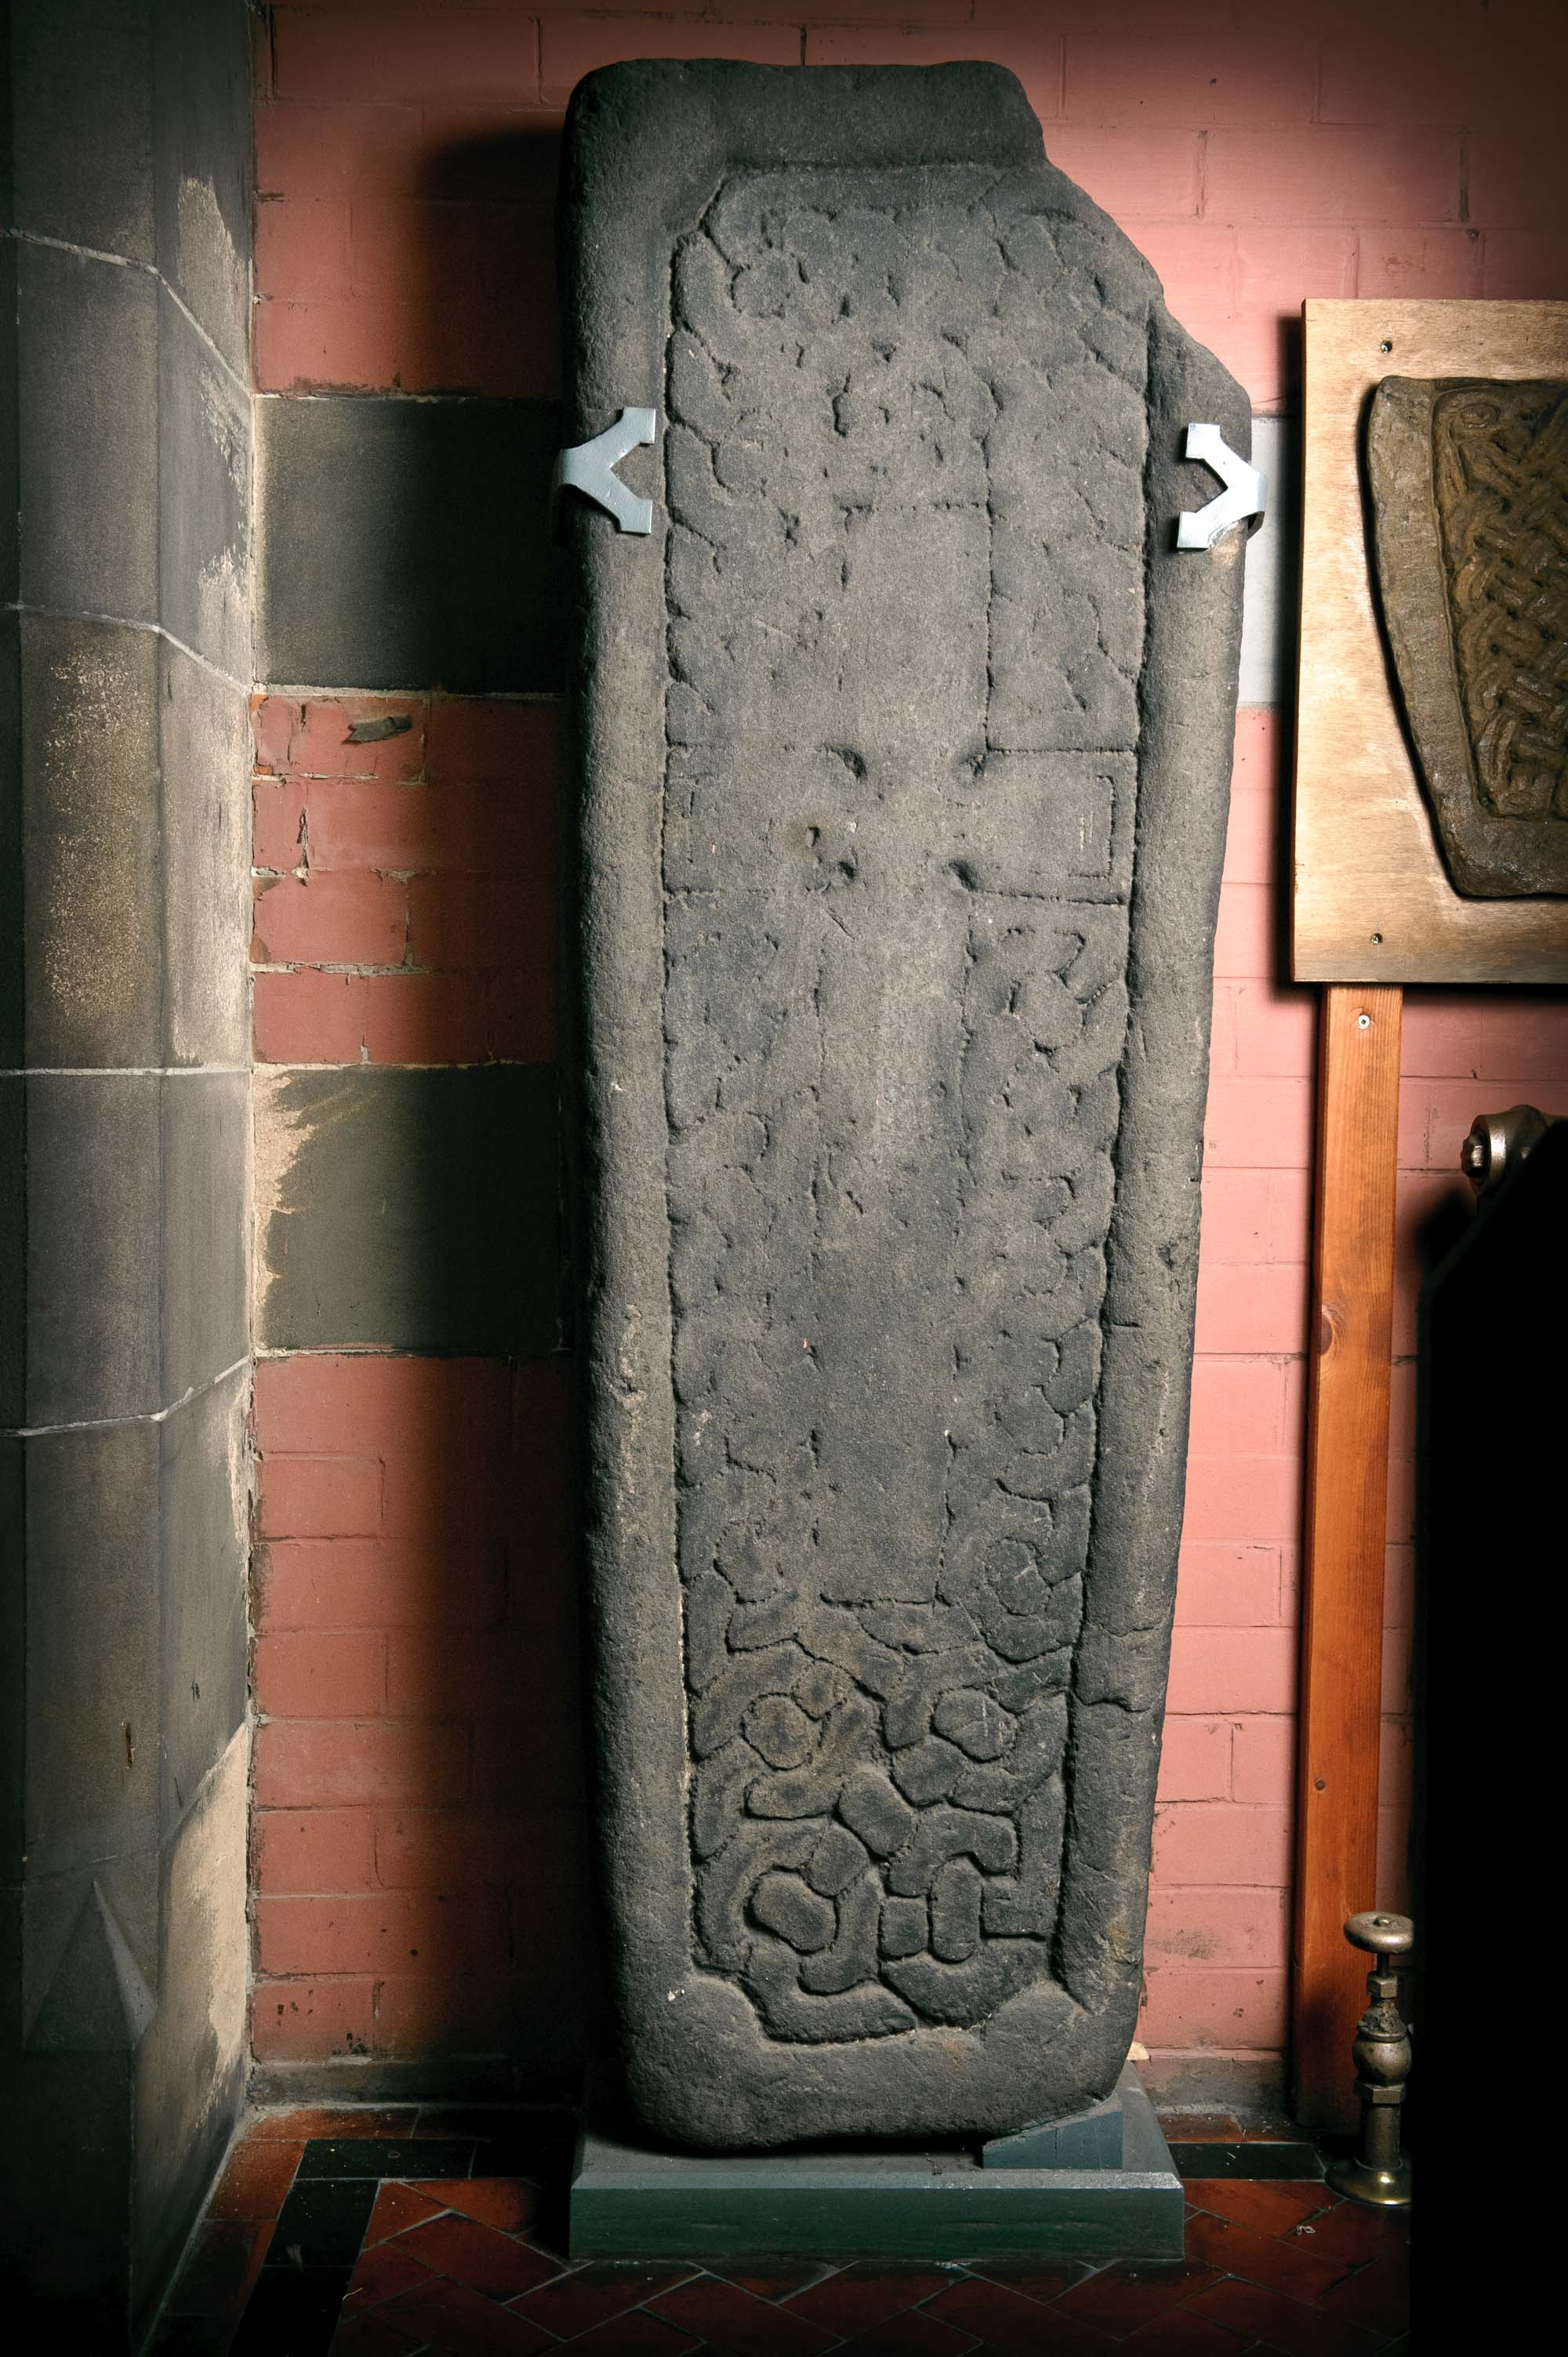 a photo of a stone slab decorated with Celtic carvings and a crucifix